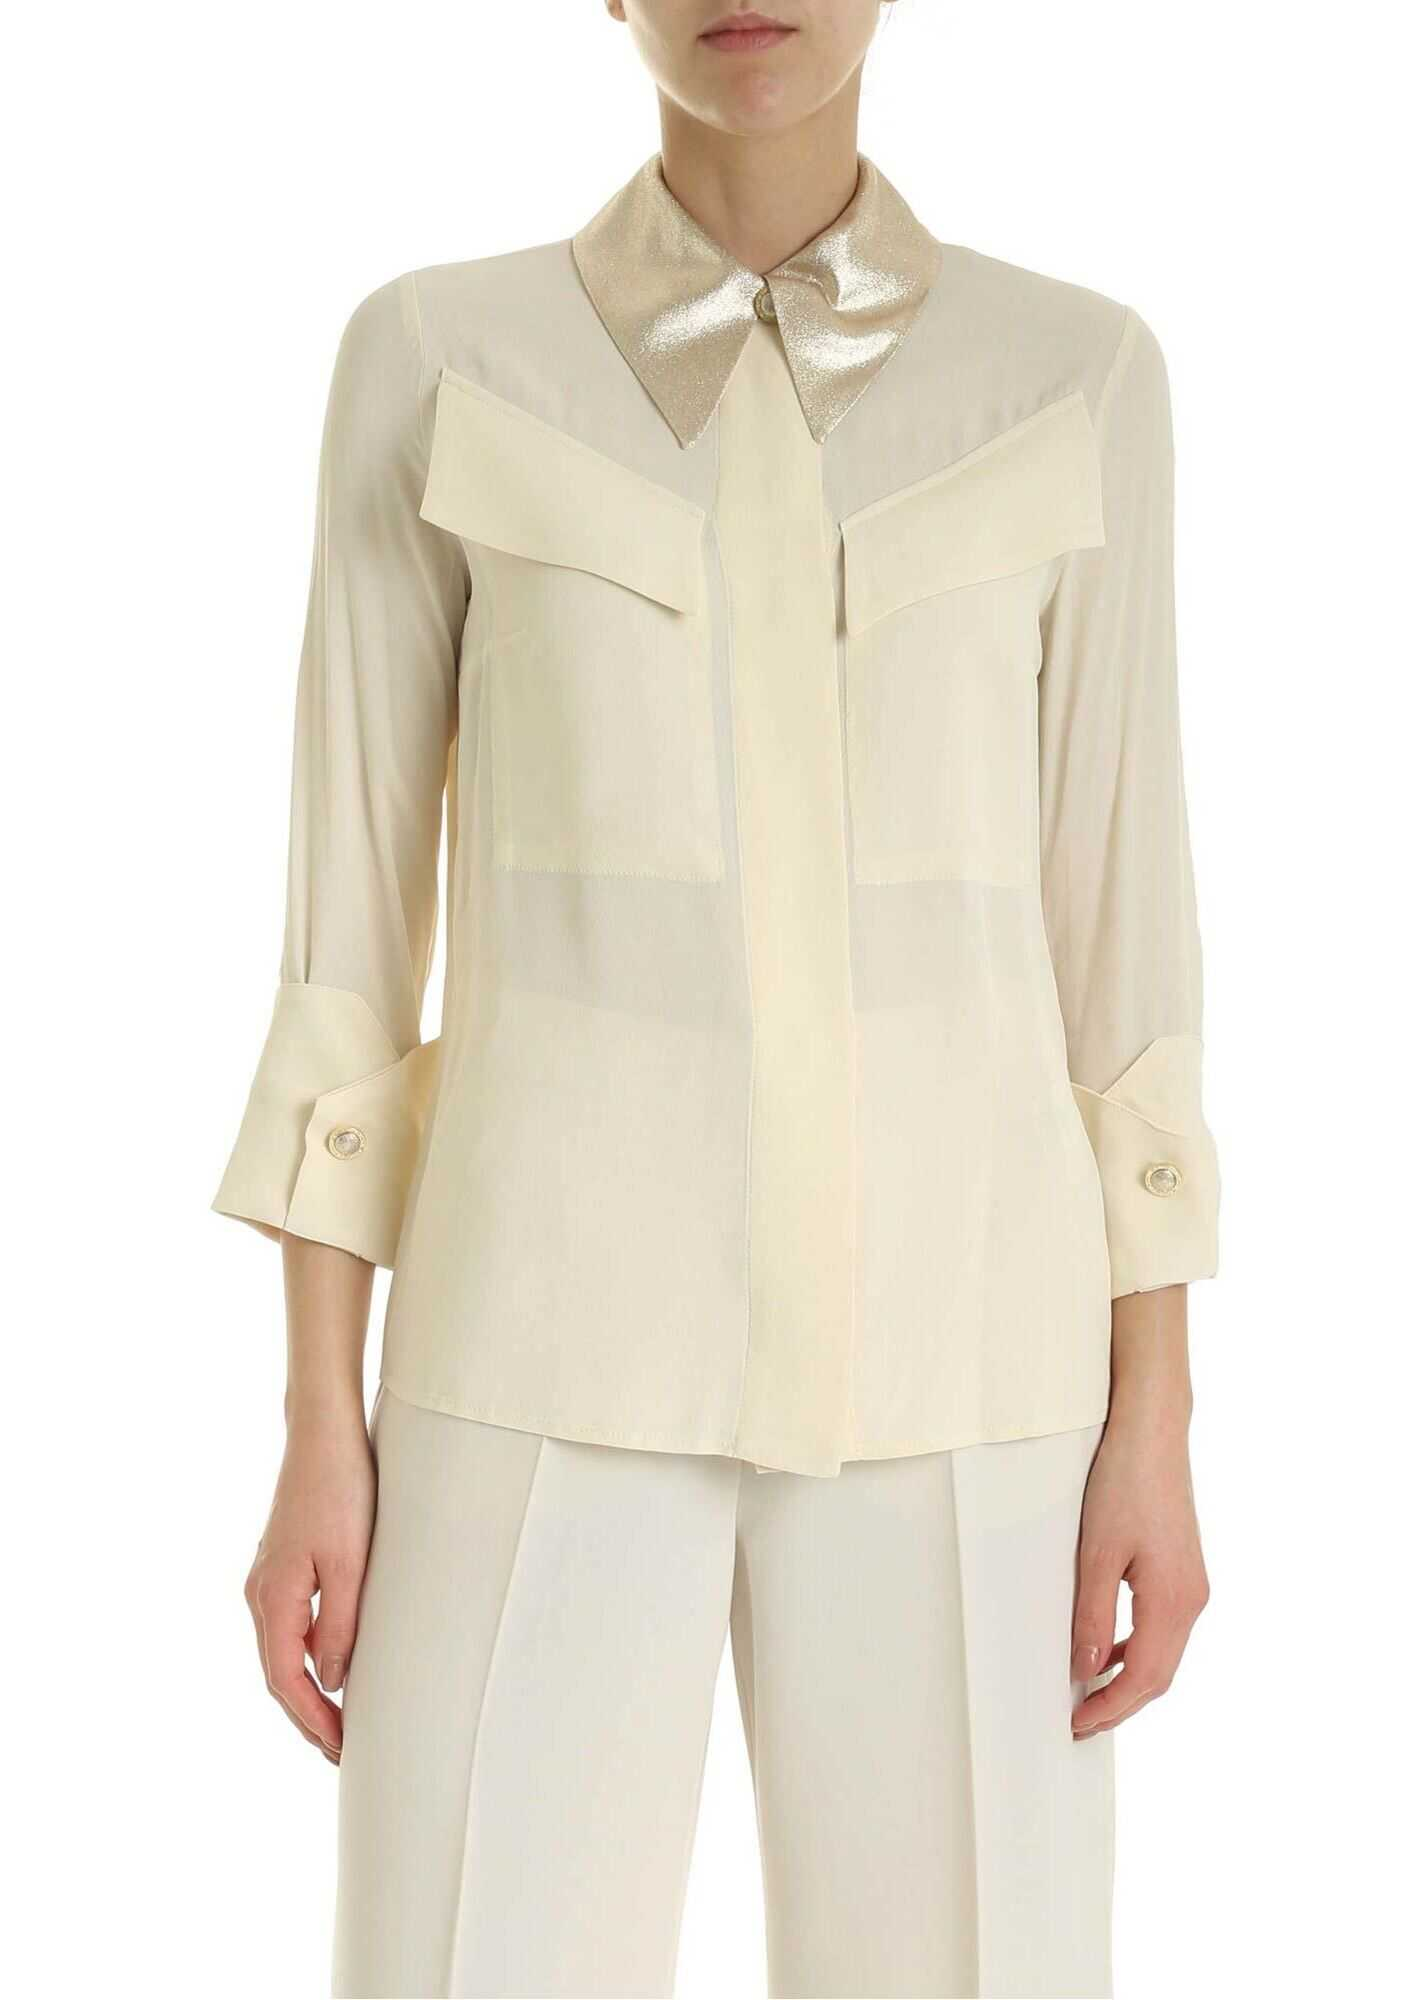 Elisabetta Franchi Shirt In Cream-Colored With Lamè Detail Cream